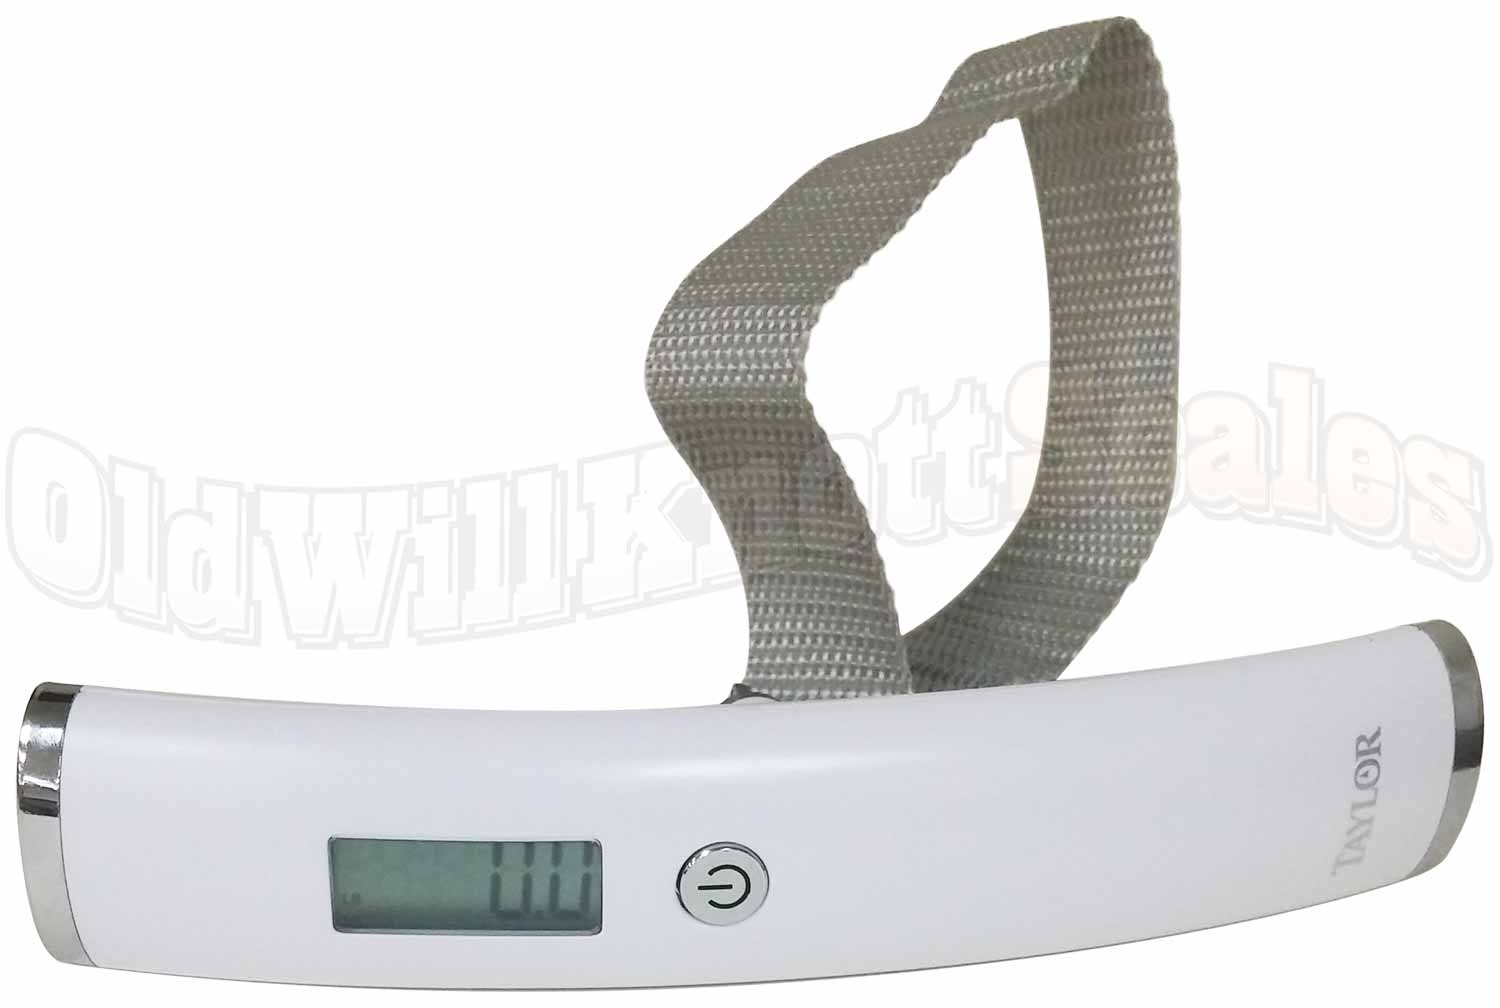 Taylor - 81234 - Digital Luggage Scale